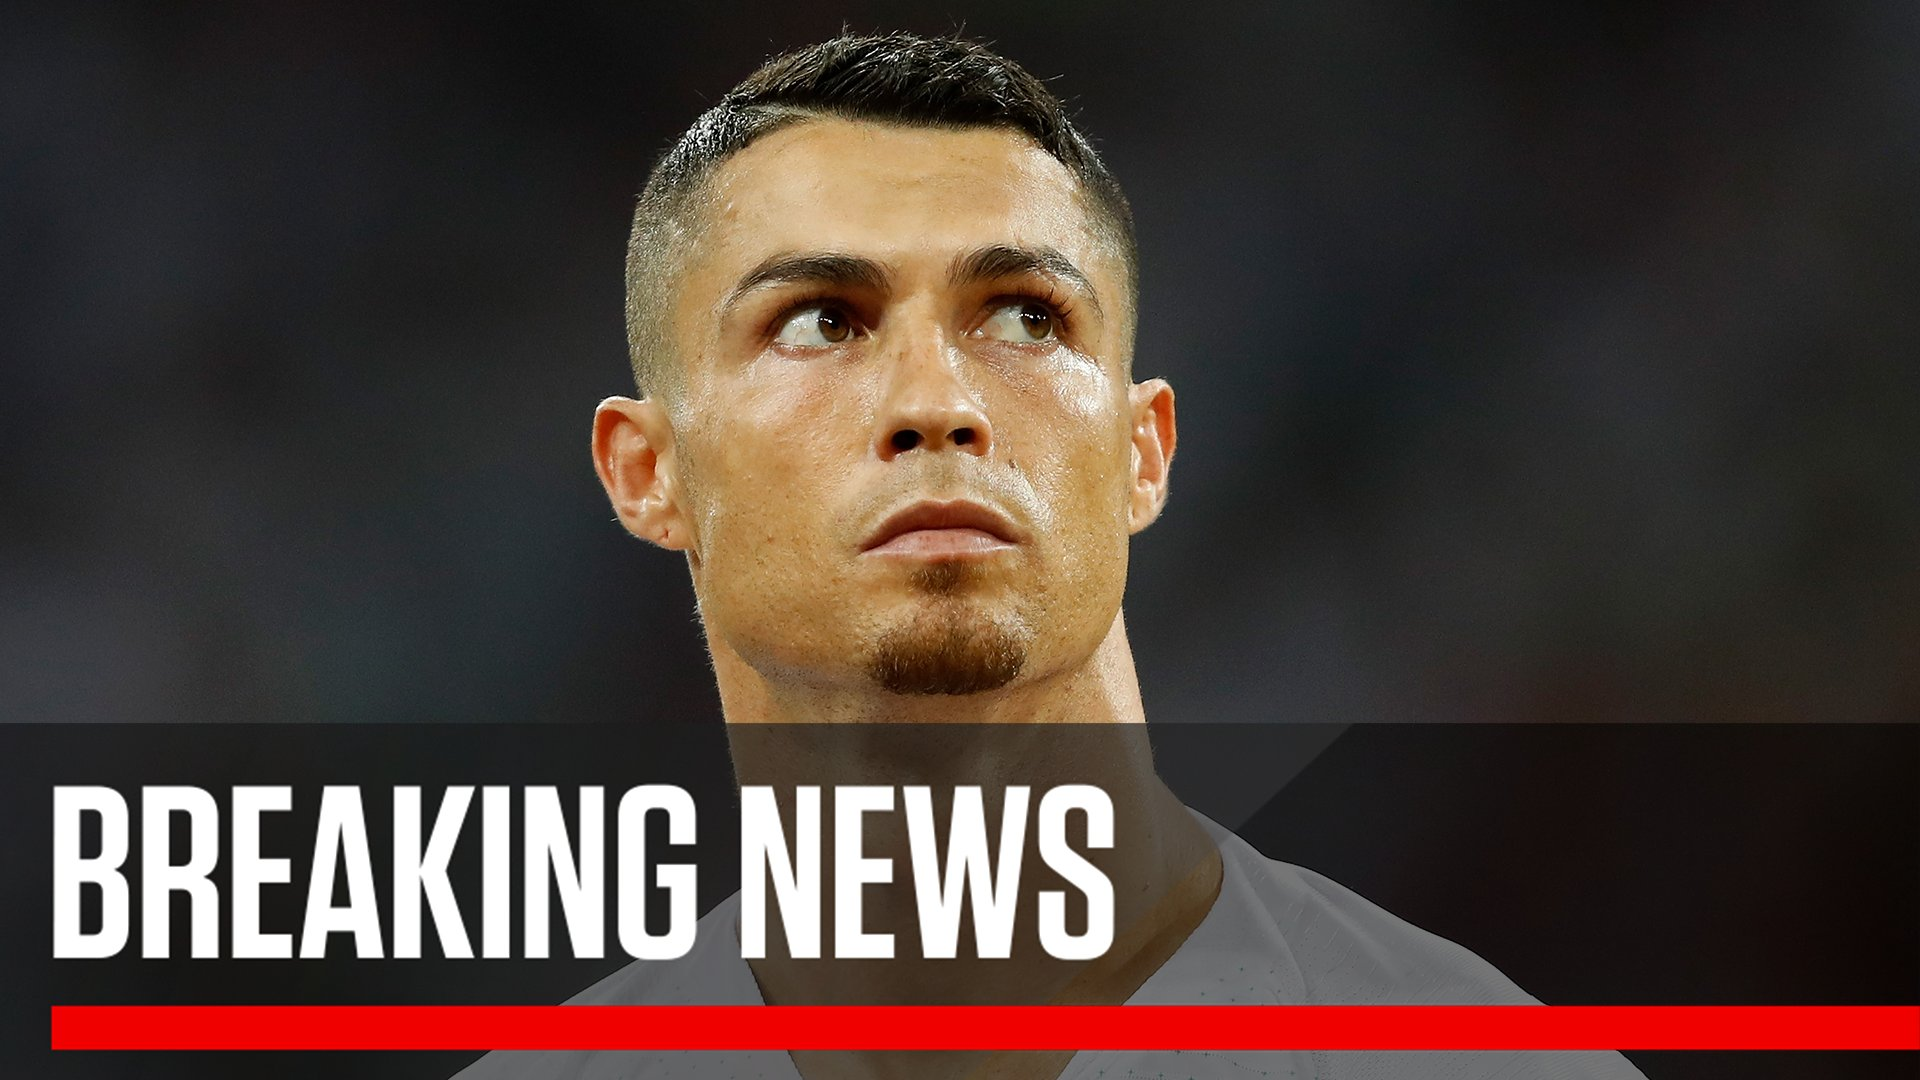 Breaking: Cristiano Ronaldo is leaving Real Madrid to sign with Juventus, the Spanish club announced. https://t.co/tqNrCnjHKW